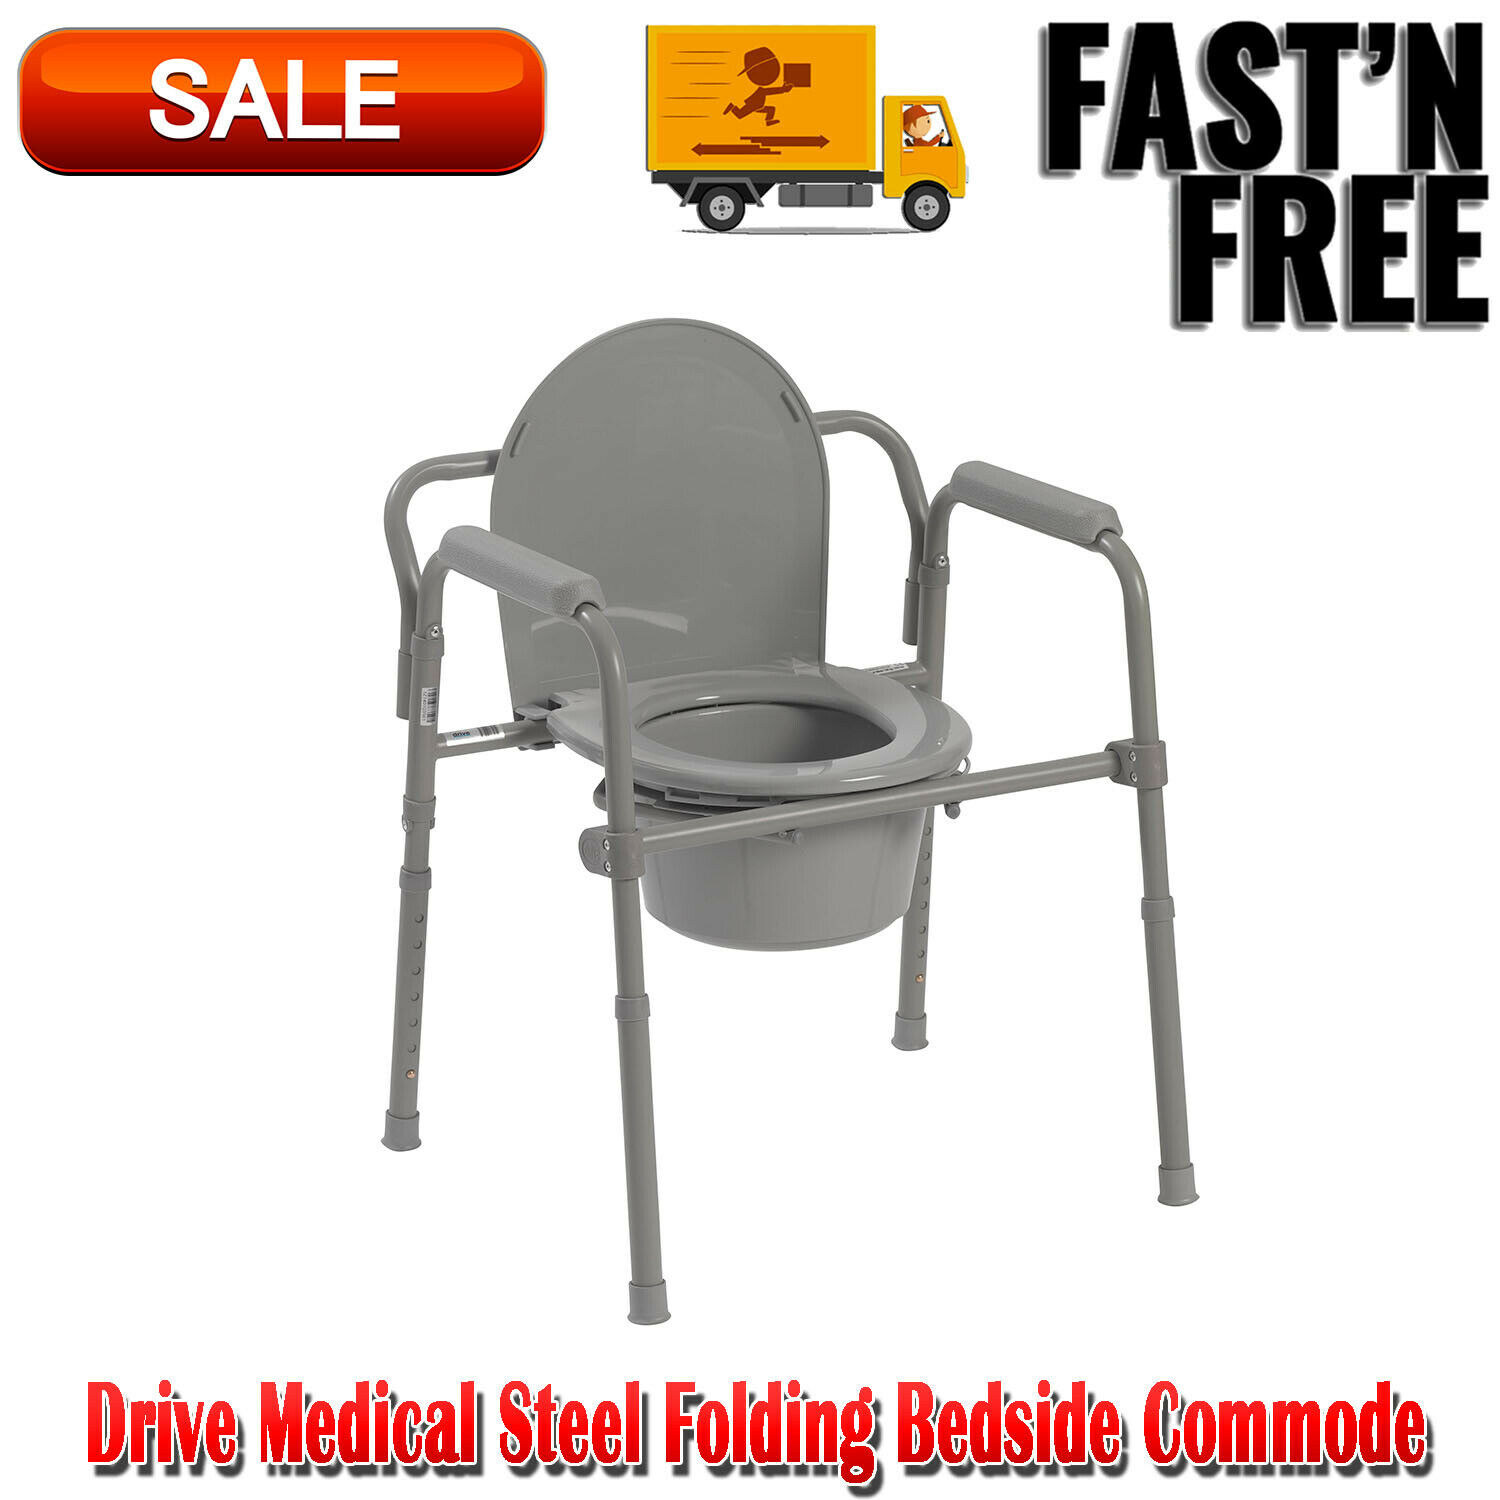 Toilet Seat Potty Chair Folding Commode Chamber Bedside Port